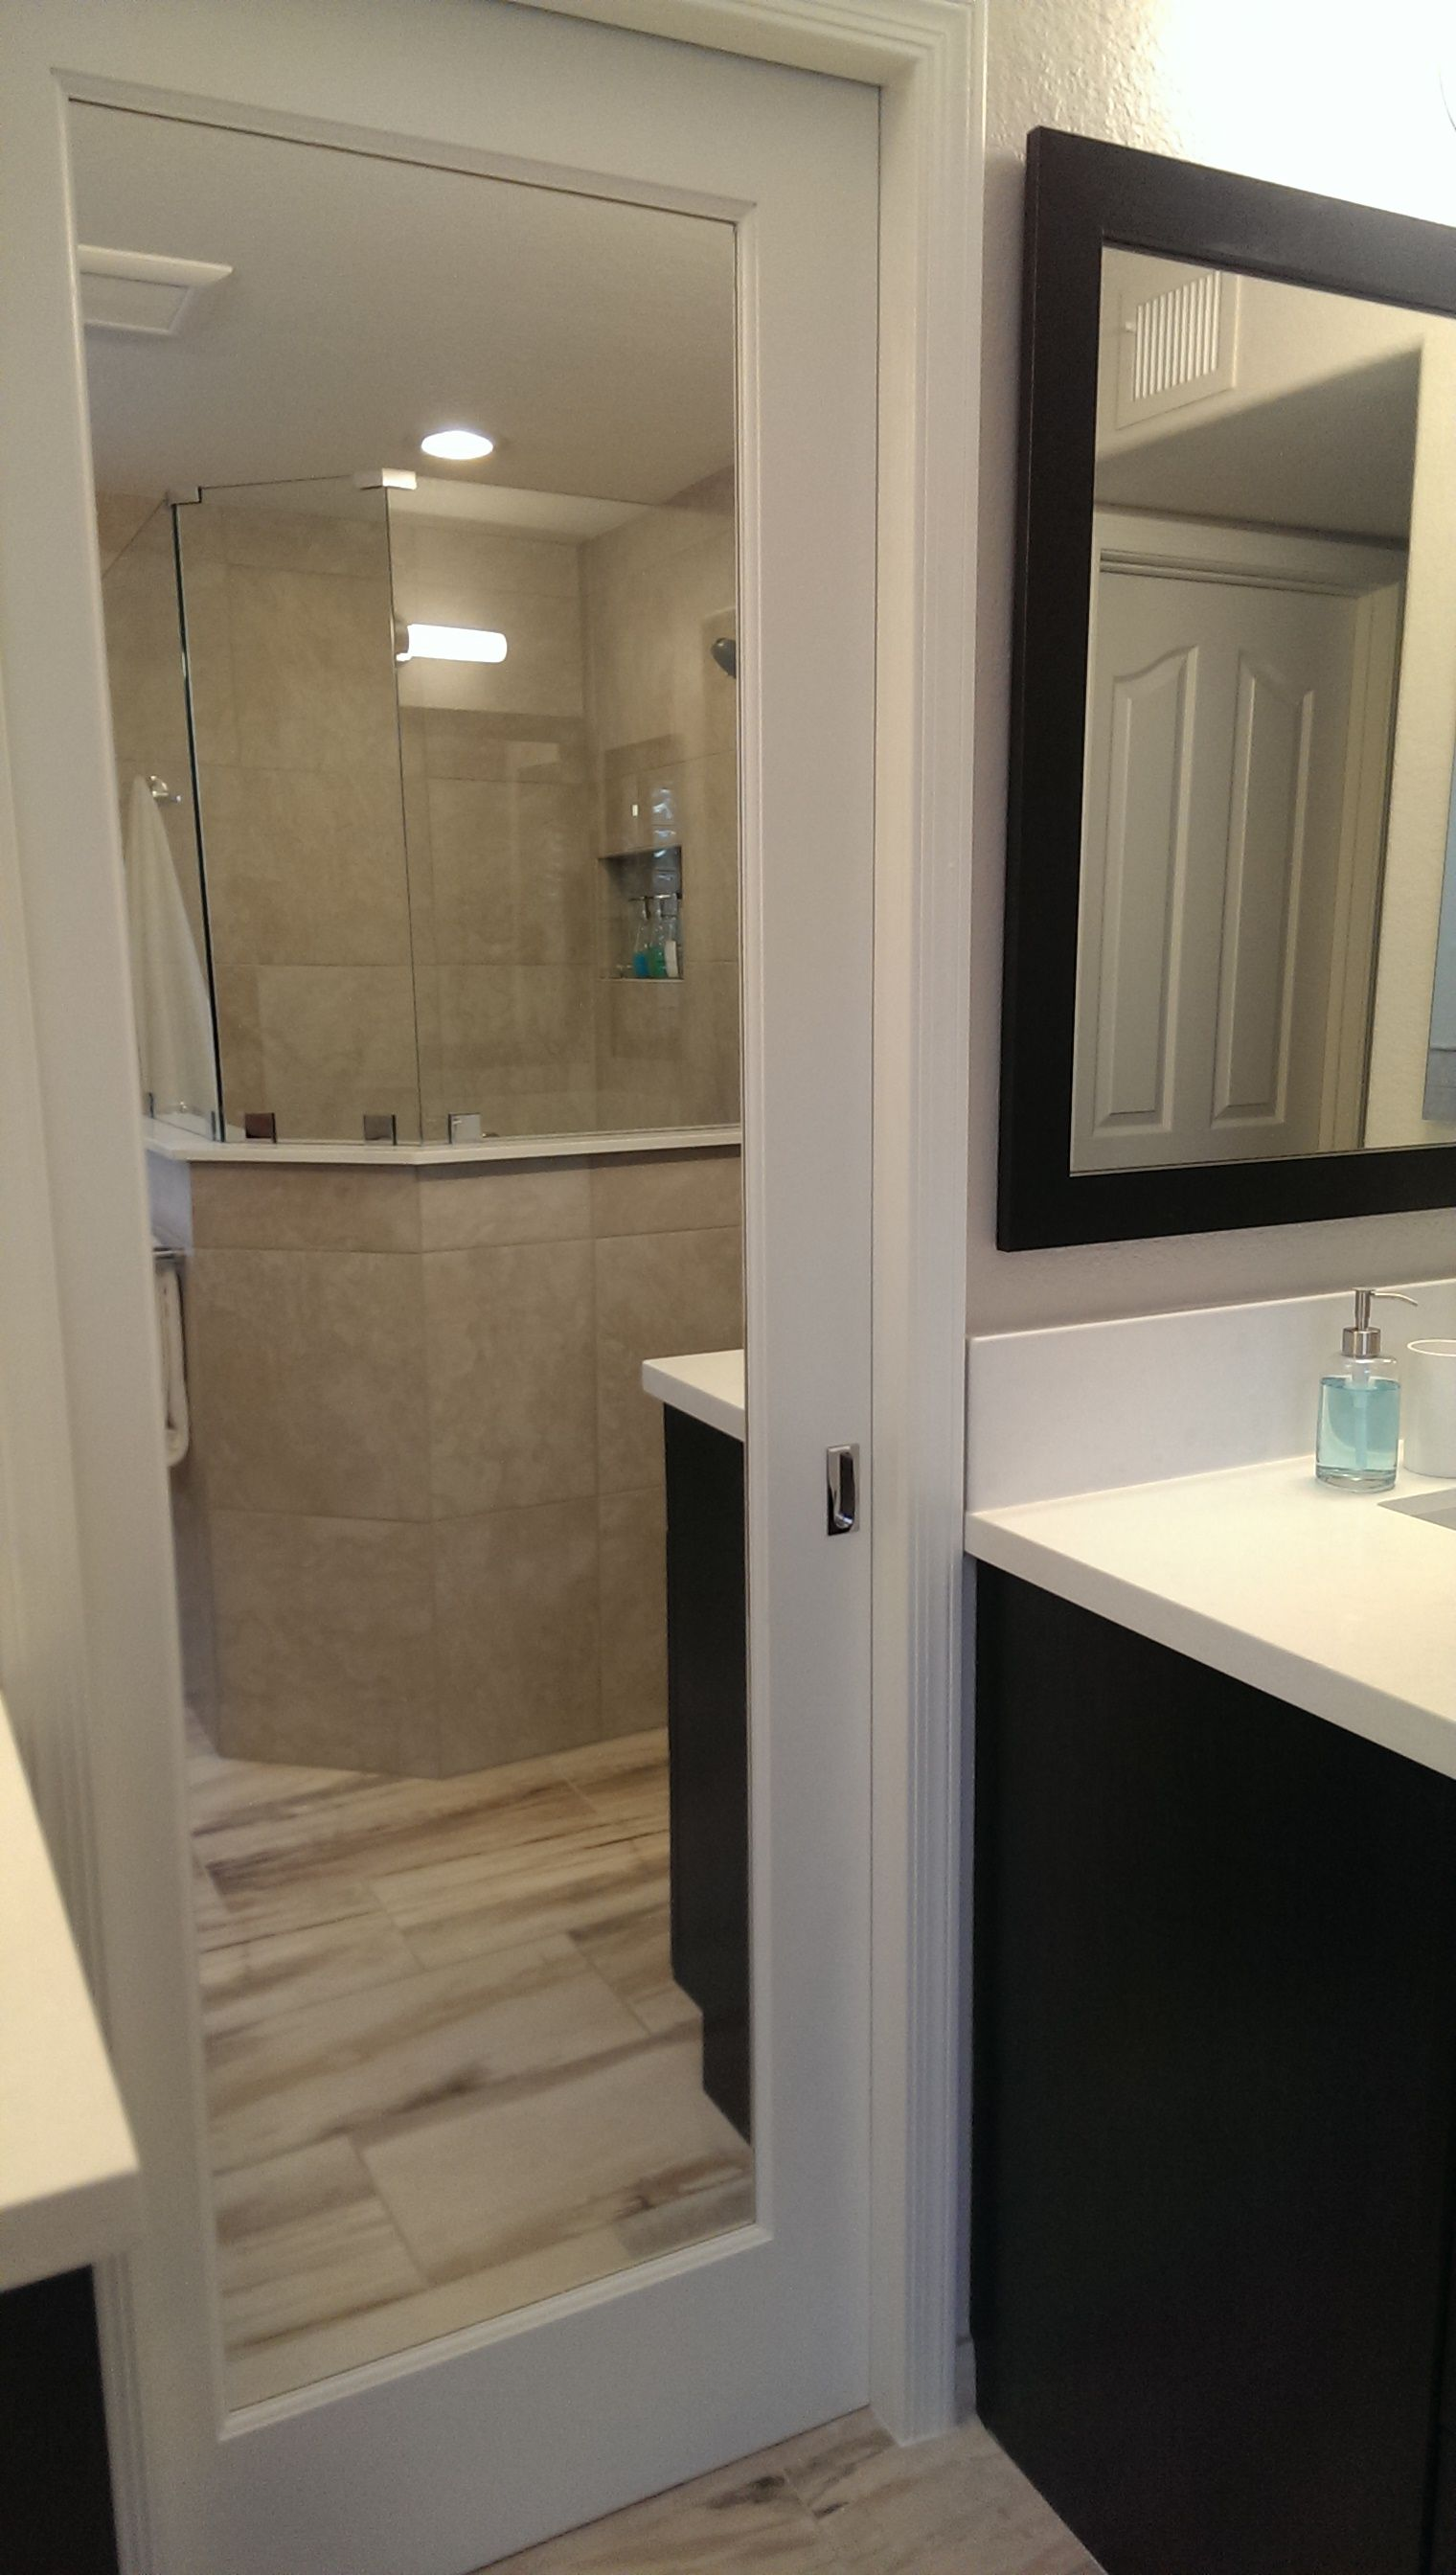 Pocket Door With 2 Sided Mirror Leads To Walk In Closet Pocket Doors Bathroom Bathroom Closet Storage Bathroom Design